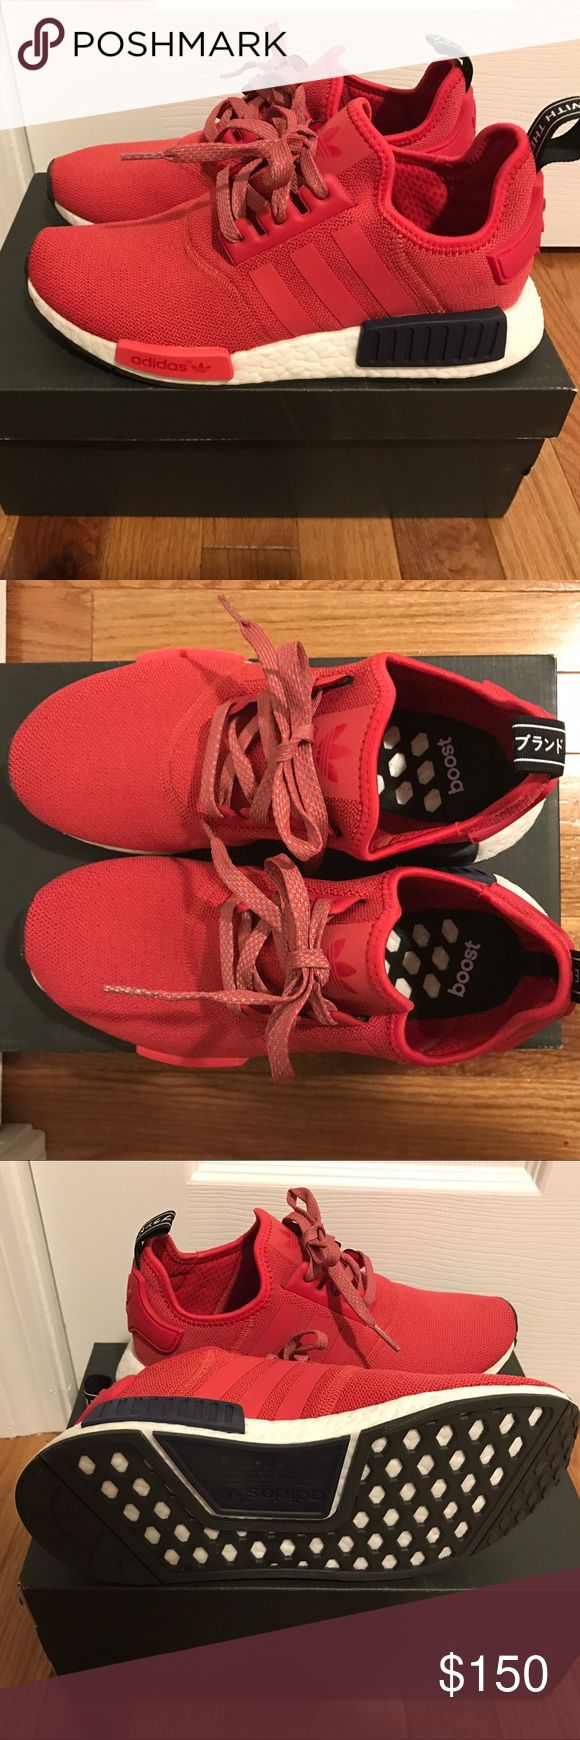 adidas nmd womens red